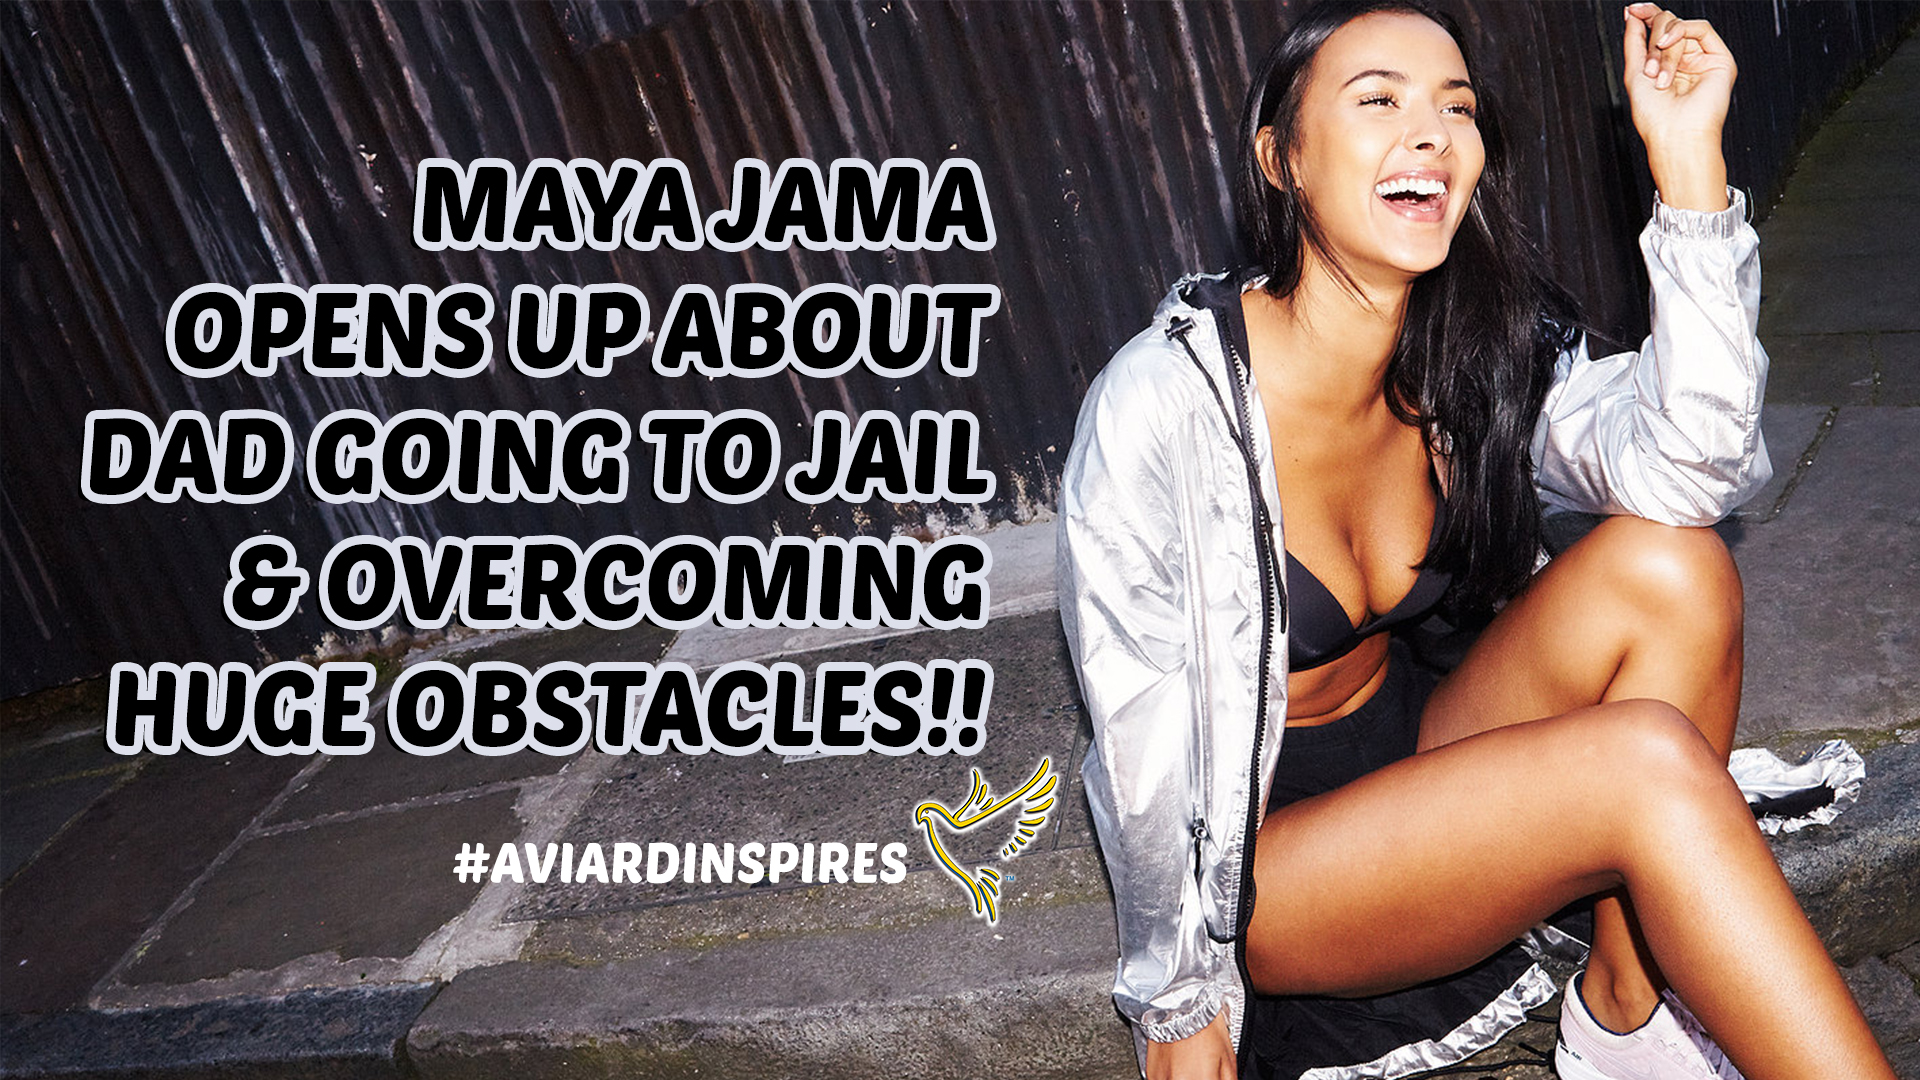 MAYA JAMA Opens Up About Overcoming HUGE Obstacles In This POWERFUL Ted Talk! (VIDEO)